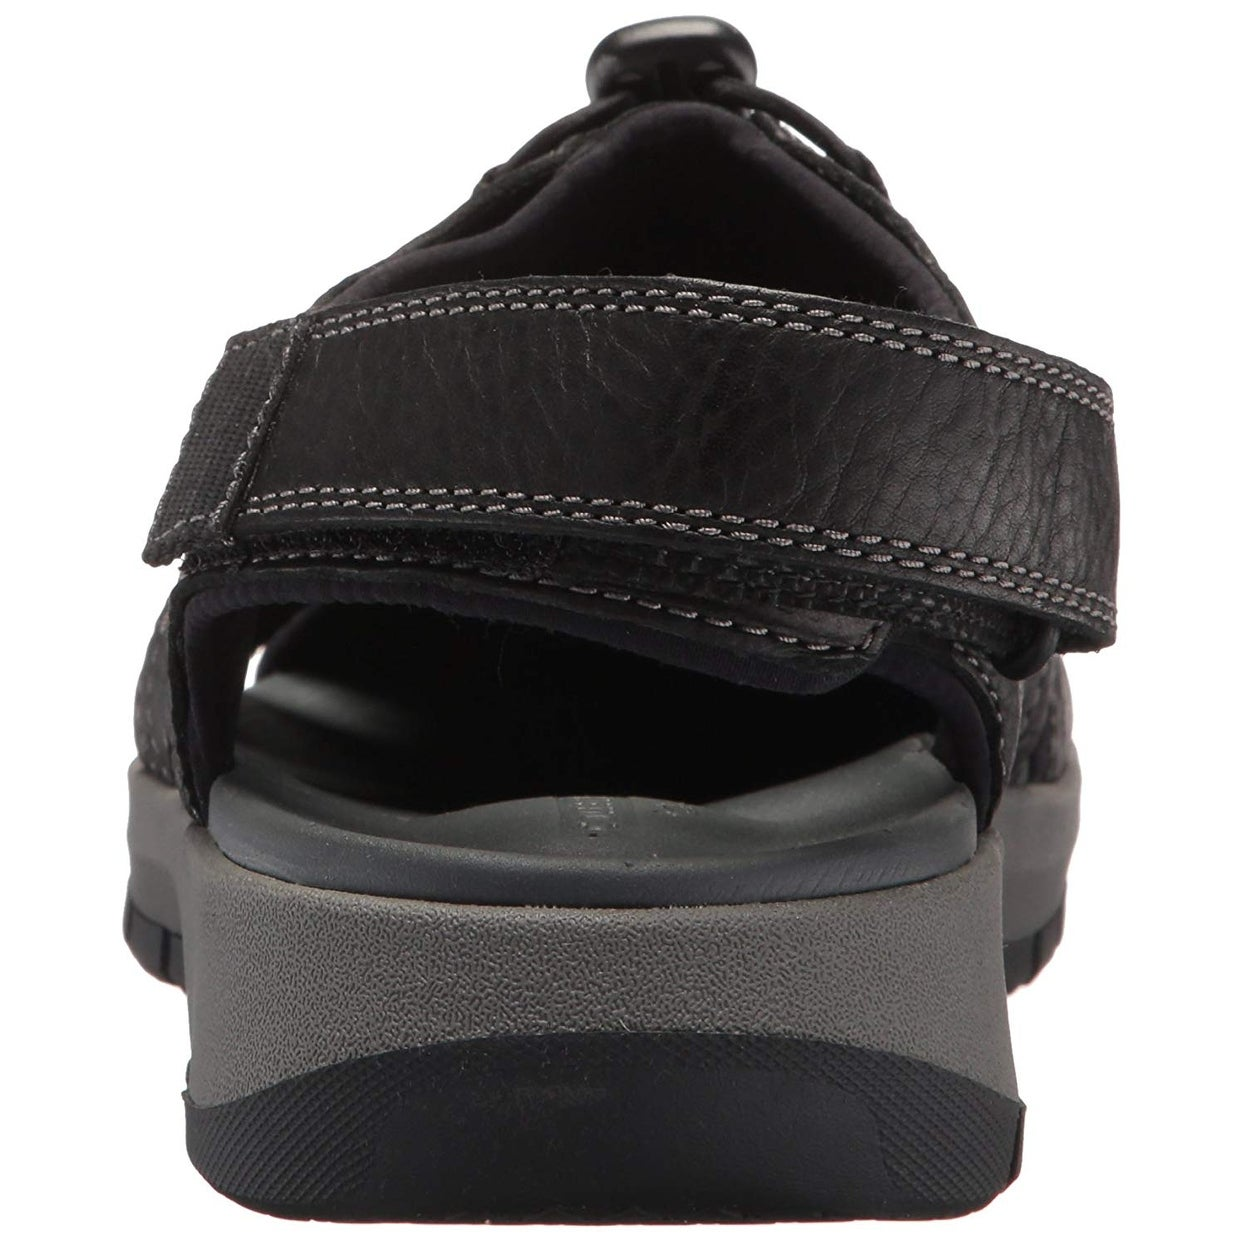 e28282a49900 Shop Clarks Mens Brixby Cove Leather Closed Toe Sport Sandals - Free  Shipping On Orders Over  45 - Overstock - 24116097